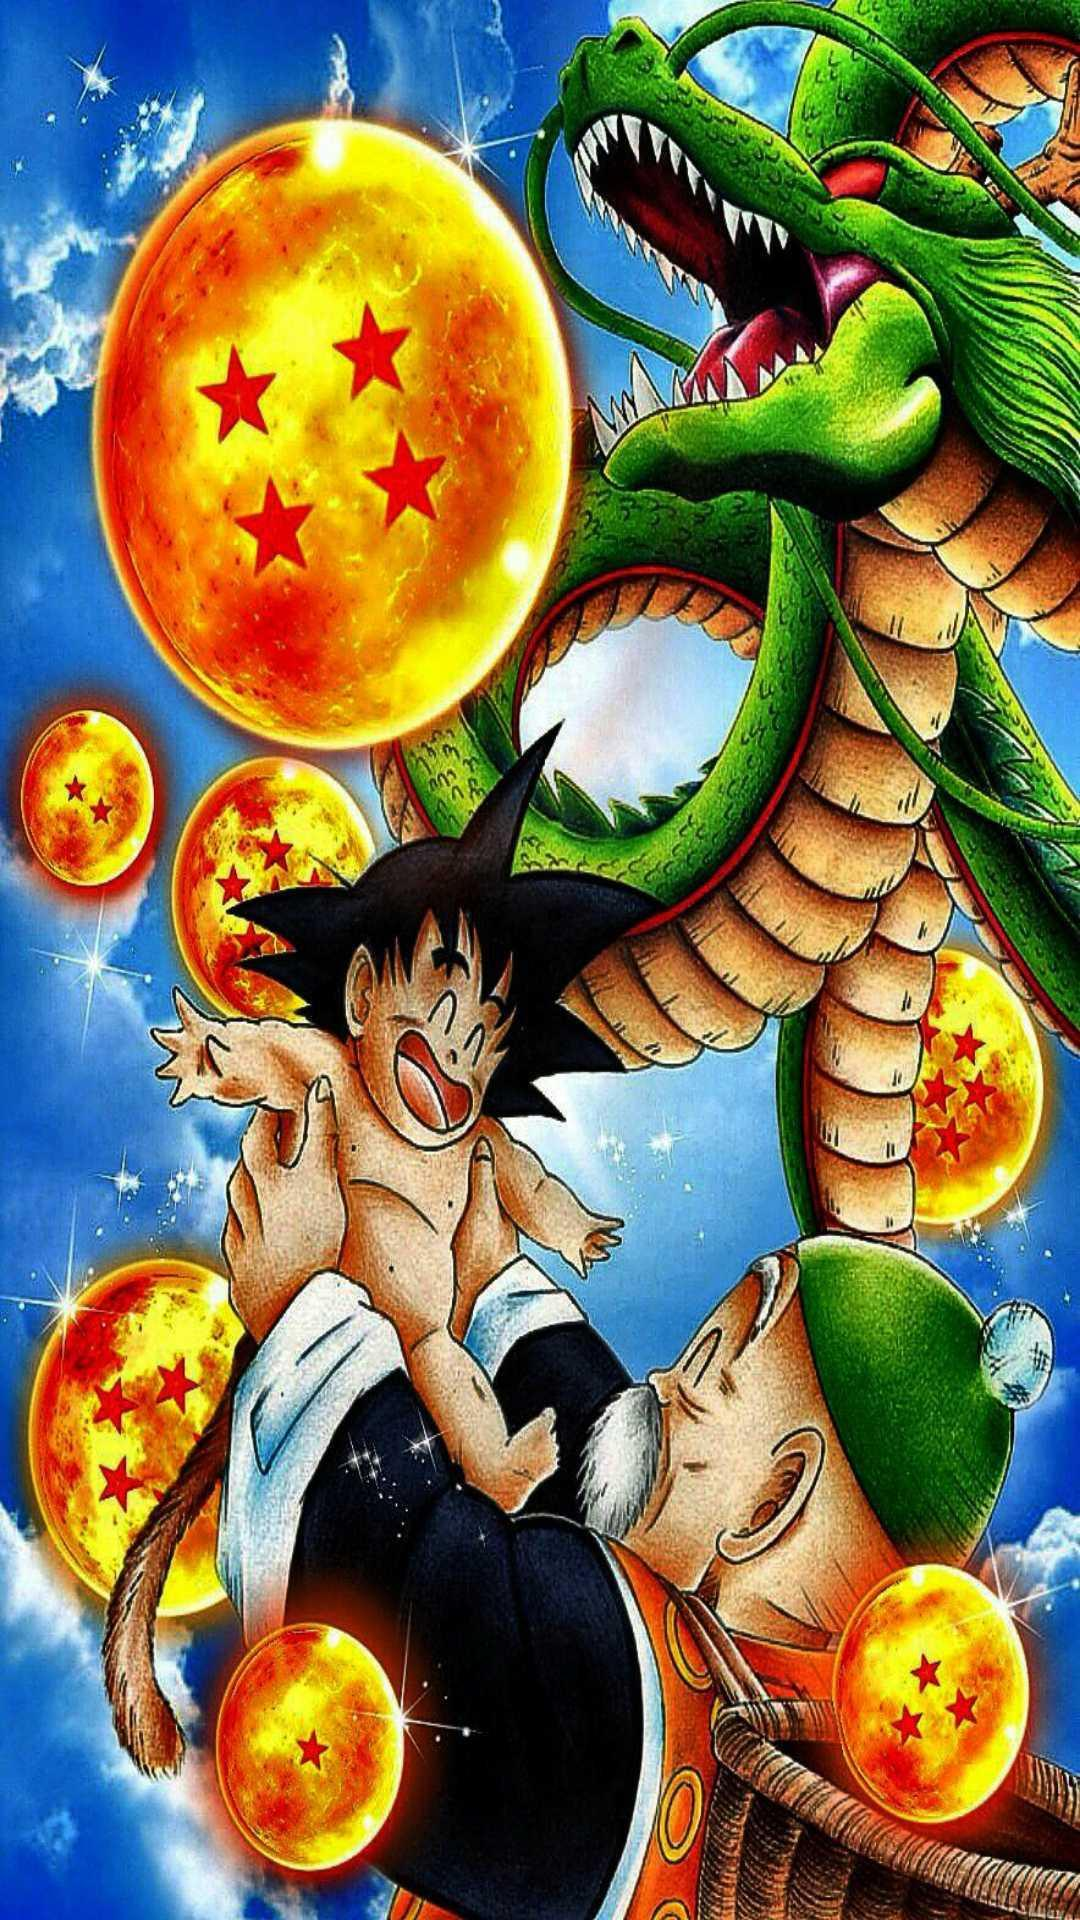 Goku Kid Dragon Wallpaper Hd For Android Apk Download